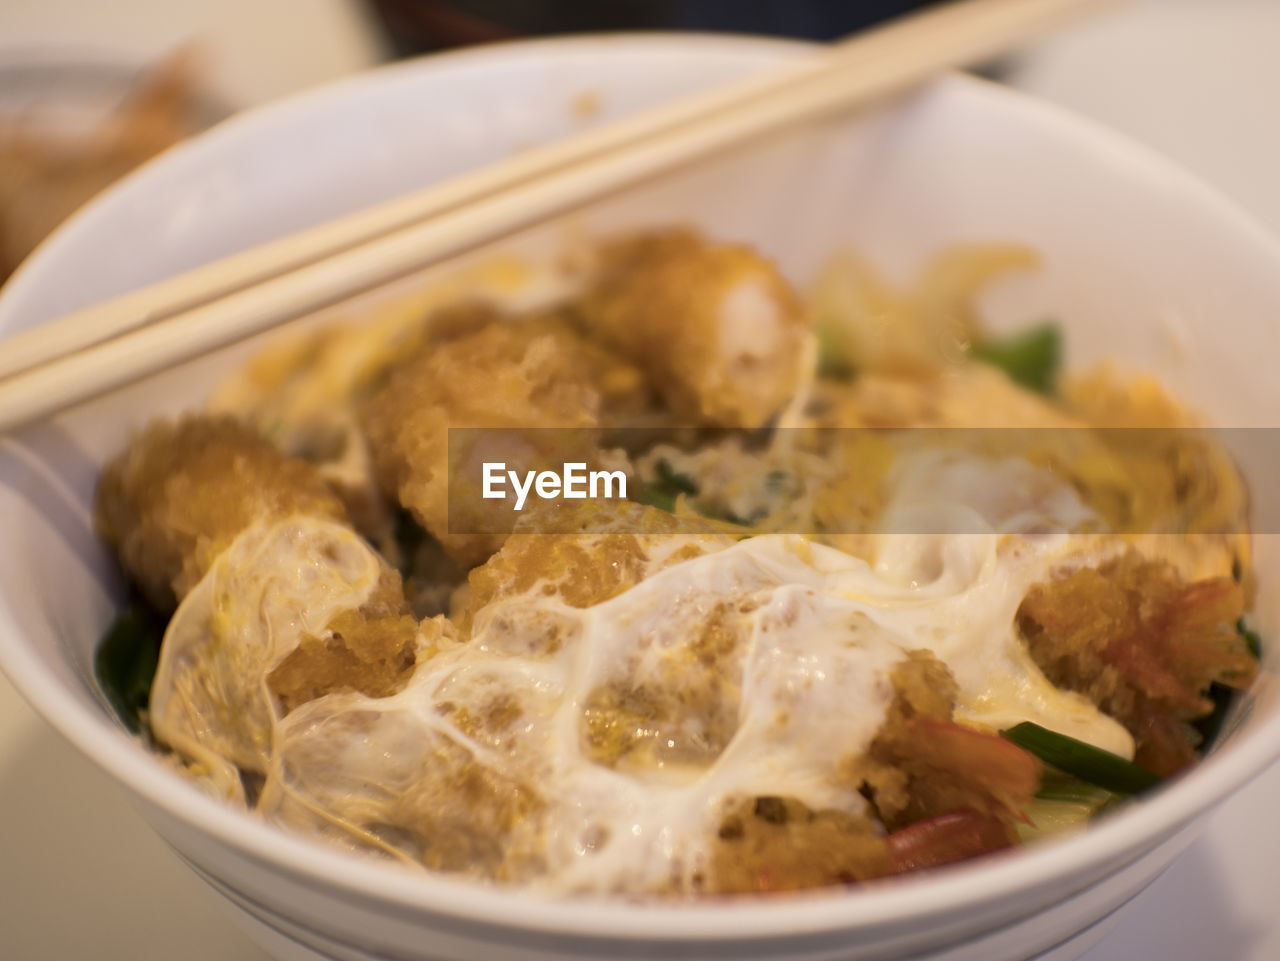 food, food and drink, ready-to-eat, close-up, freshness, healthy eating, still life, serving size, bowl, meal, wellbeing, no people, indoors, kitchen utensil, selective focus, eating utensil, table, spoon, asian food, high angle view, breakfast, temptation, japanese food, garnish, dinner, snack